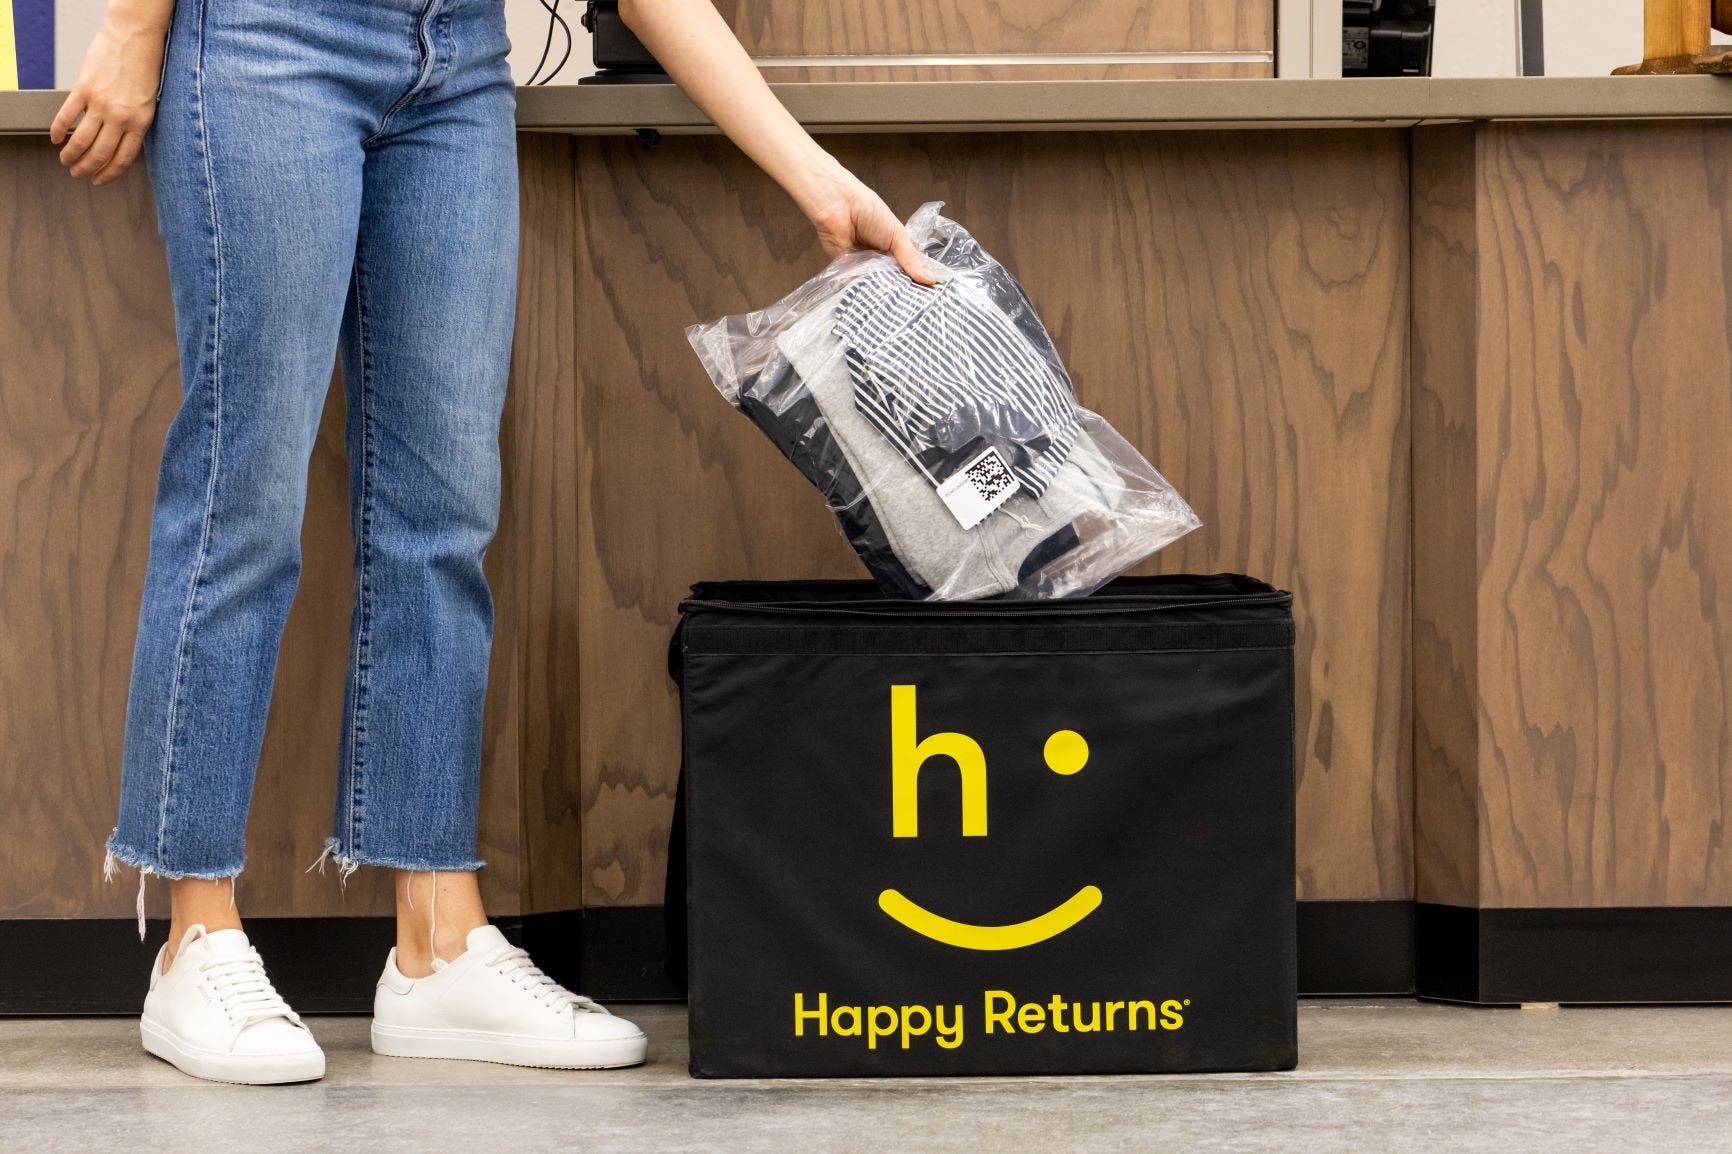 Happy Returns expanding its network of 'Return Bars' with new collaboration with FedEx